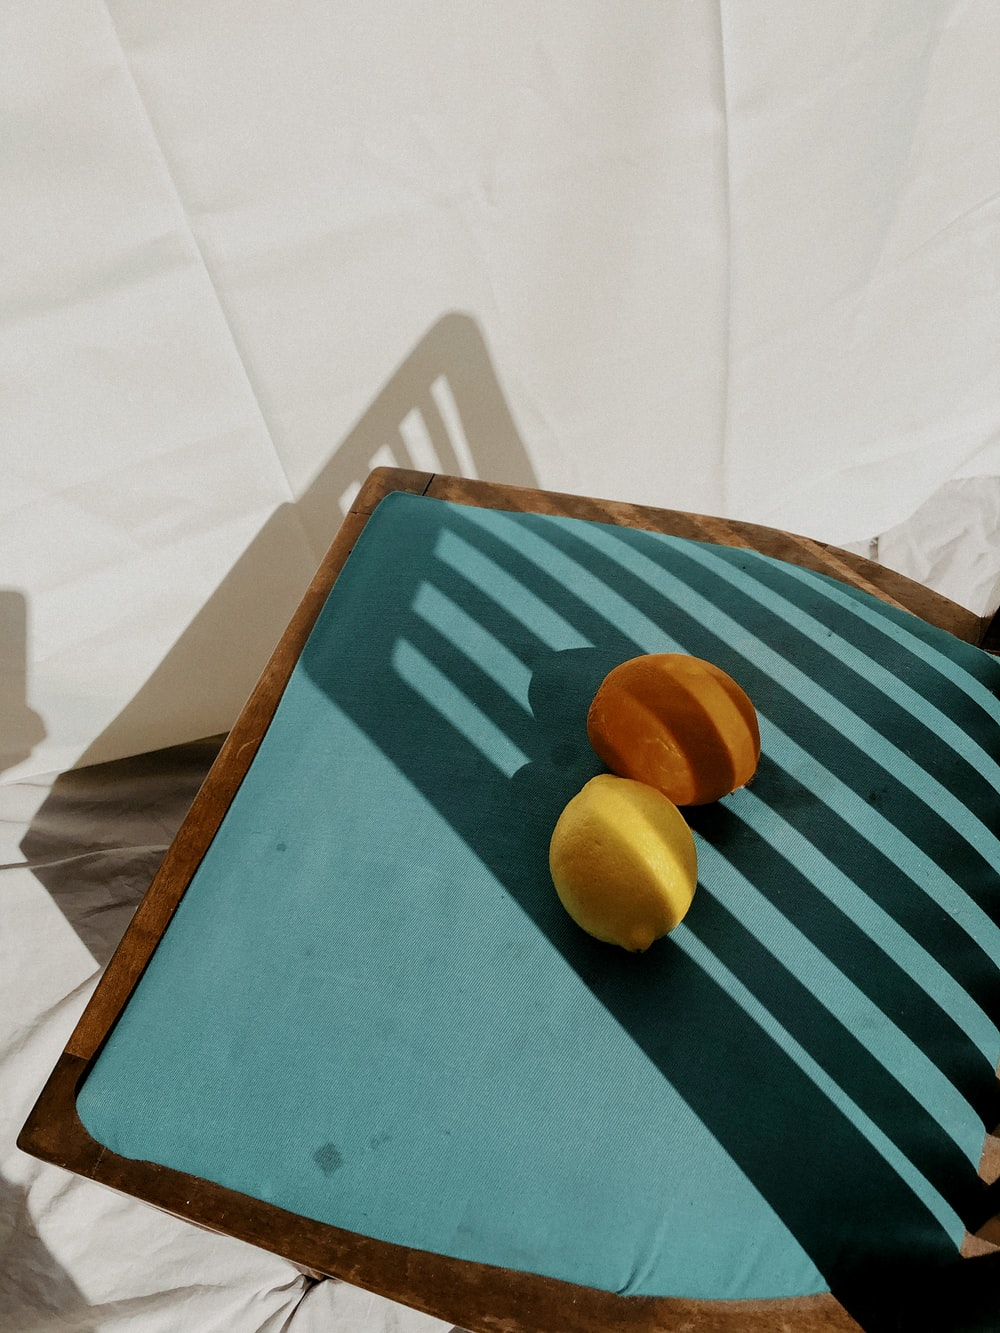 yellow round fruit on blue and white striped textile